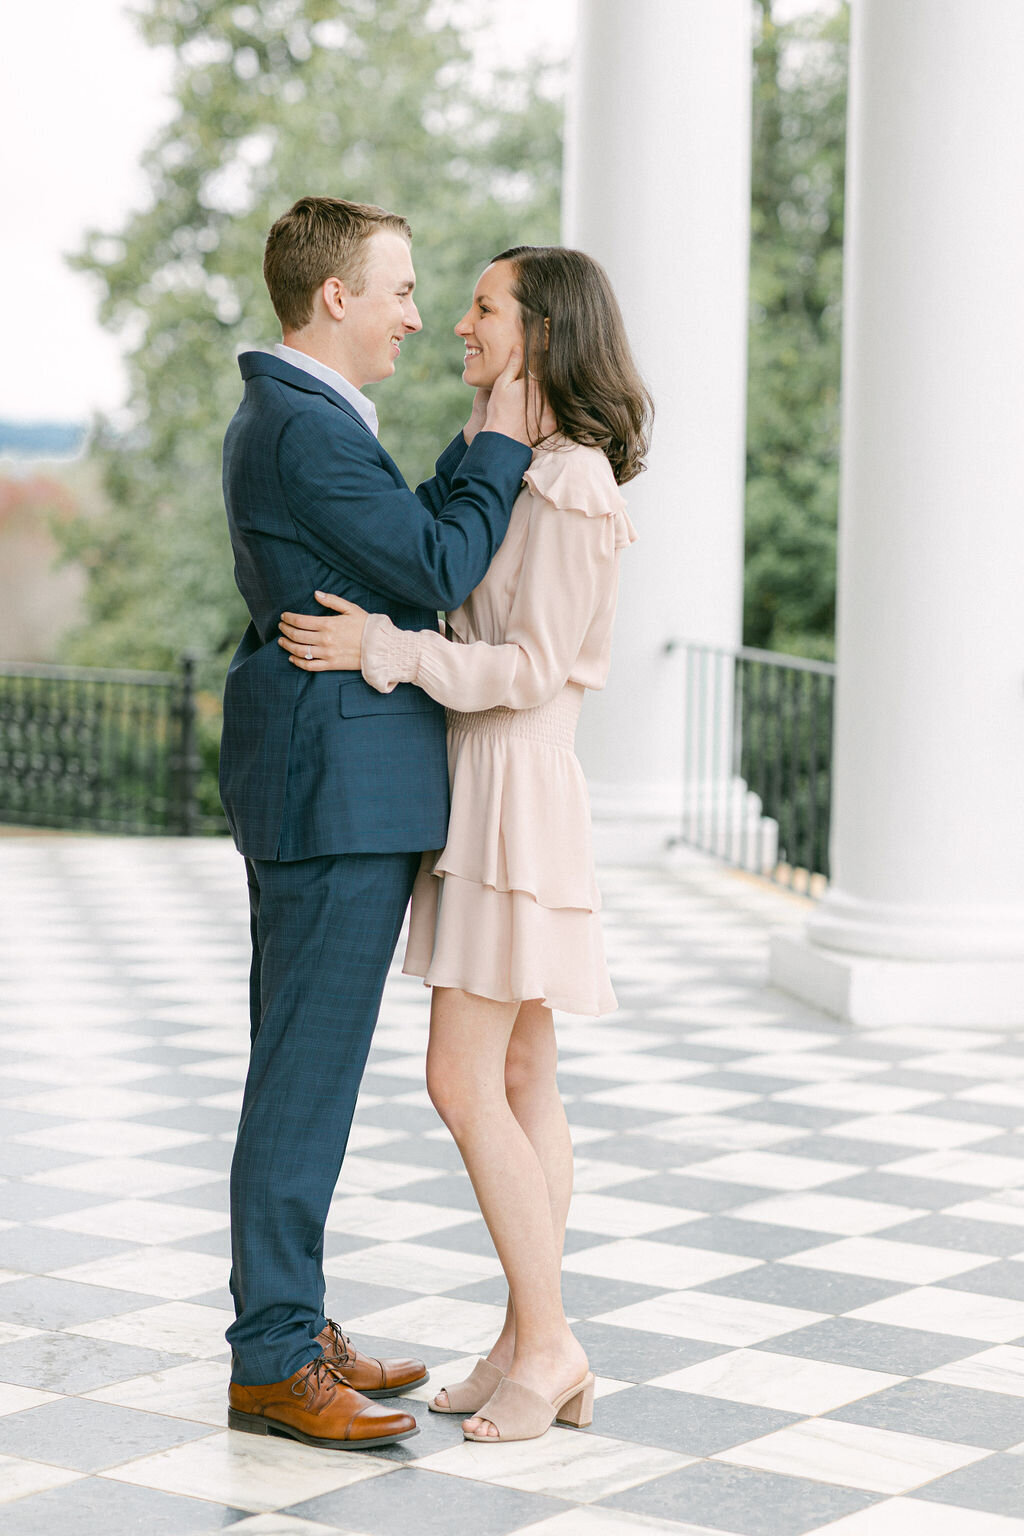 audra-jones-photography-natalie-lewis-farmington-charlottesville-engagement-edit-17